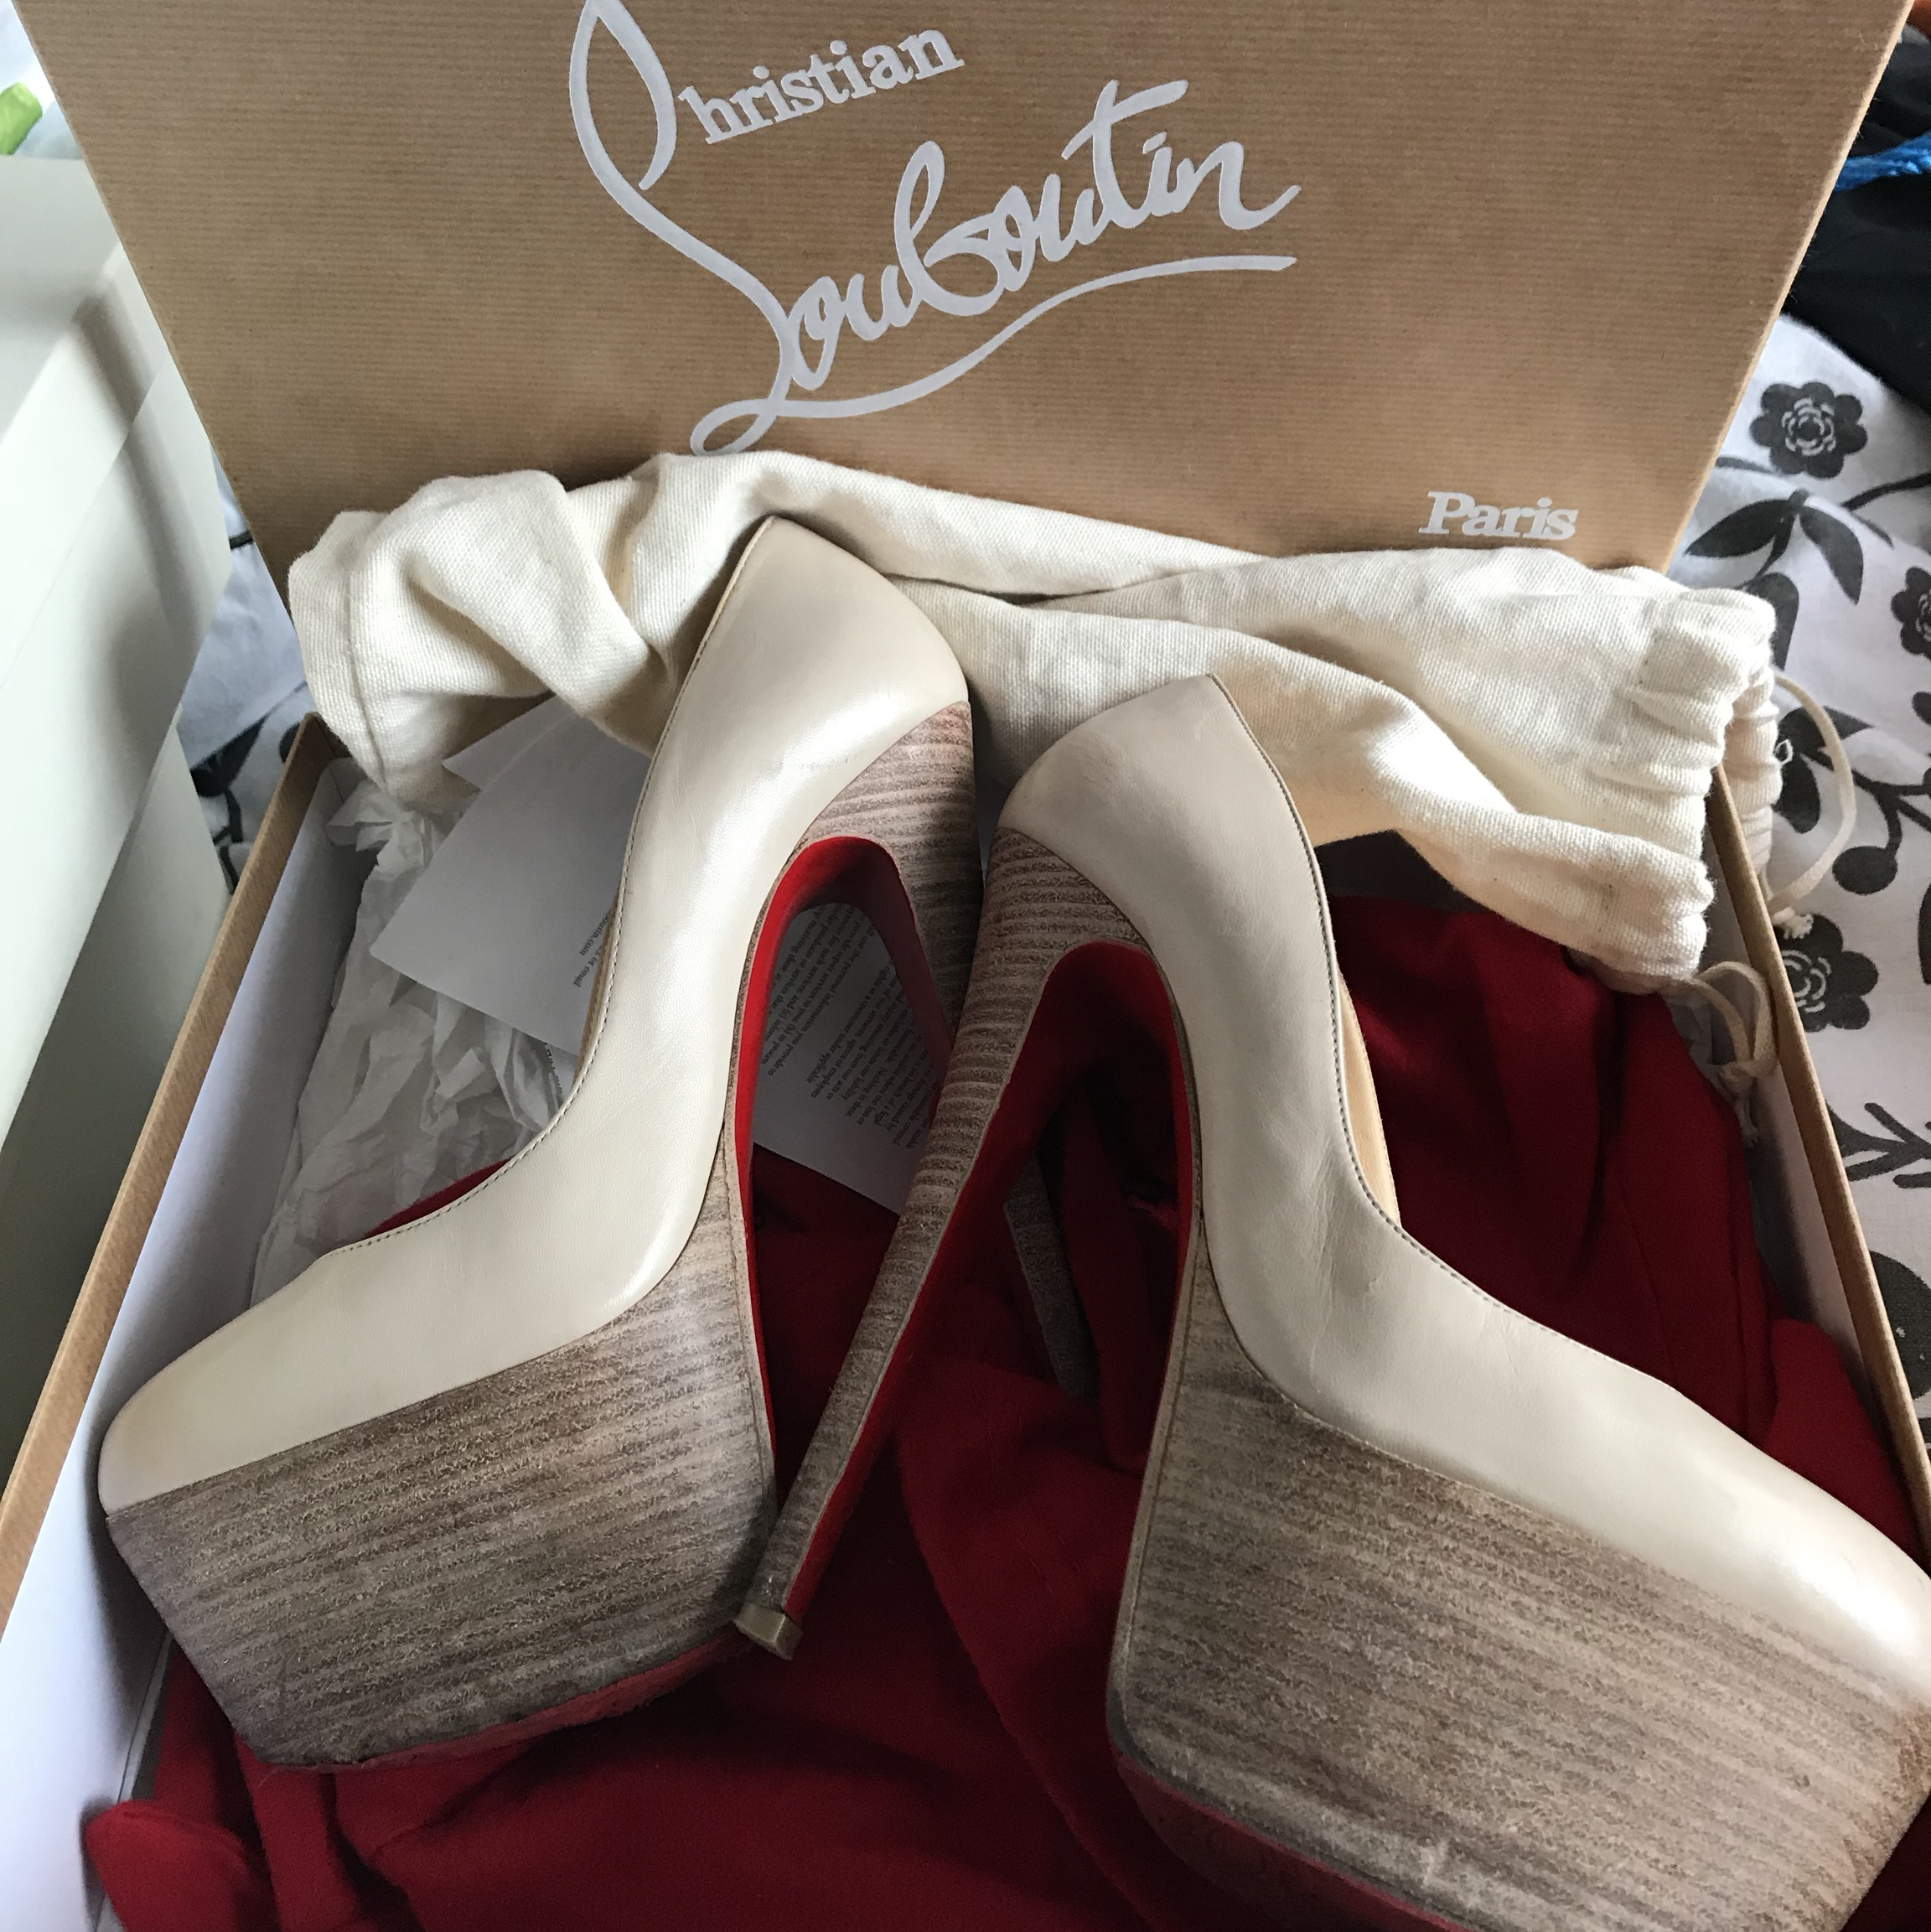 Christian Louboutin Shoes high heel wood material Depop